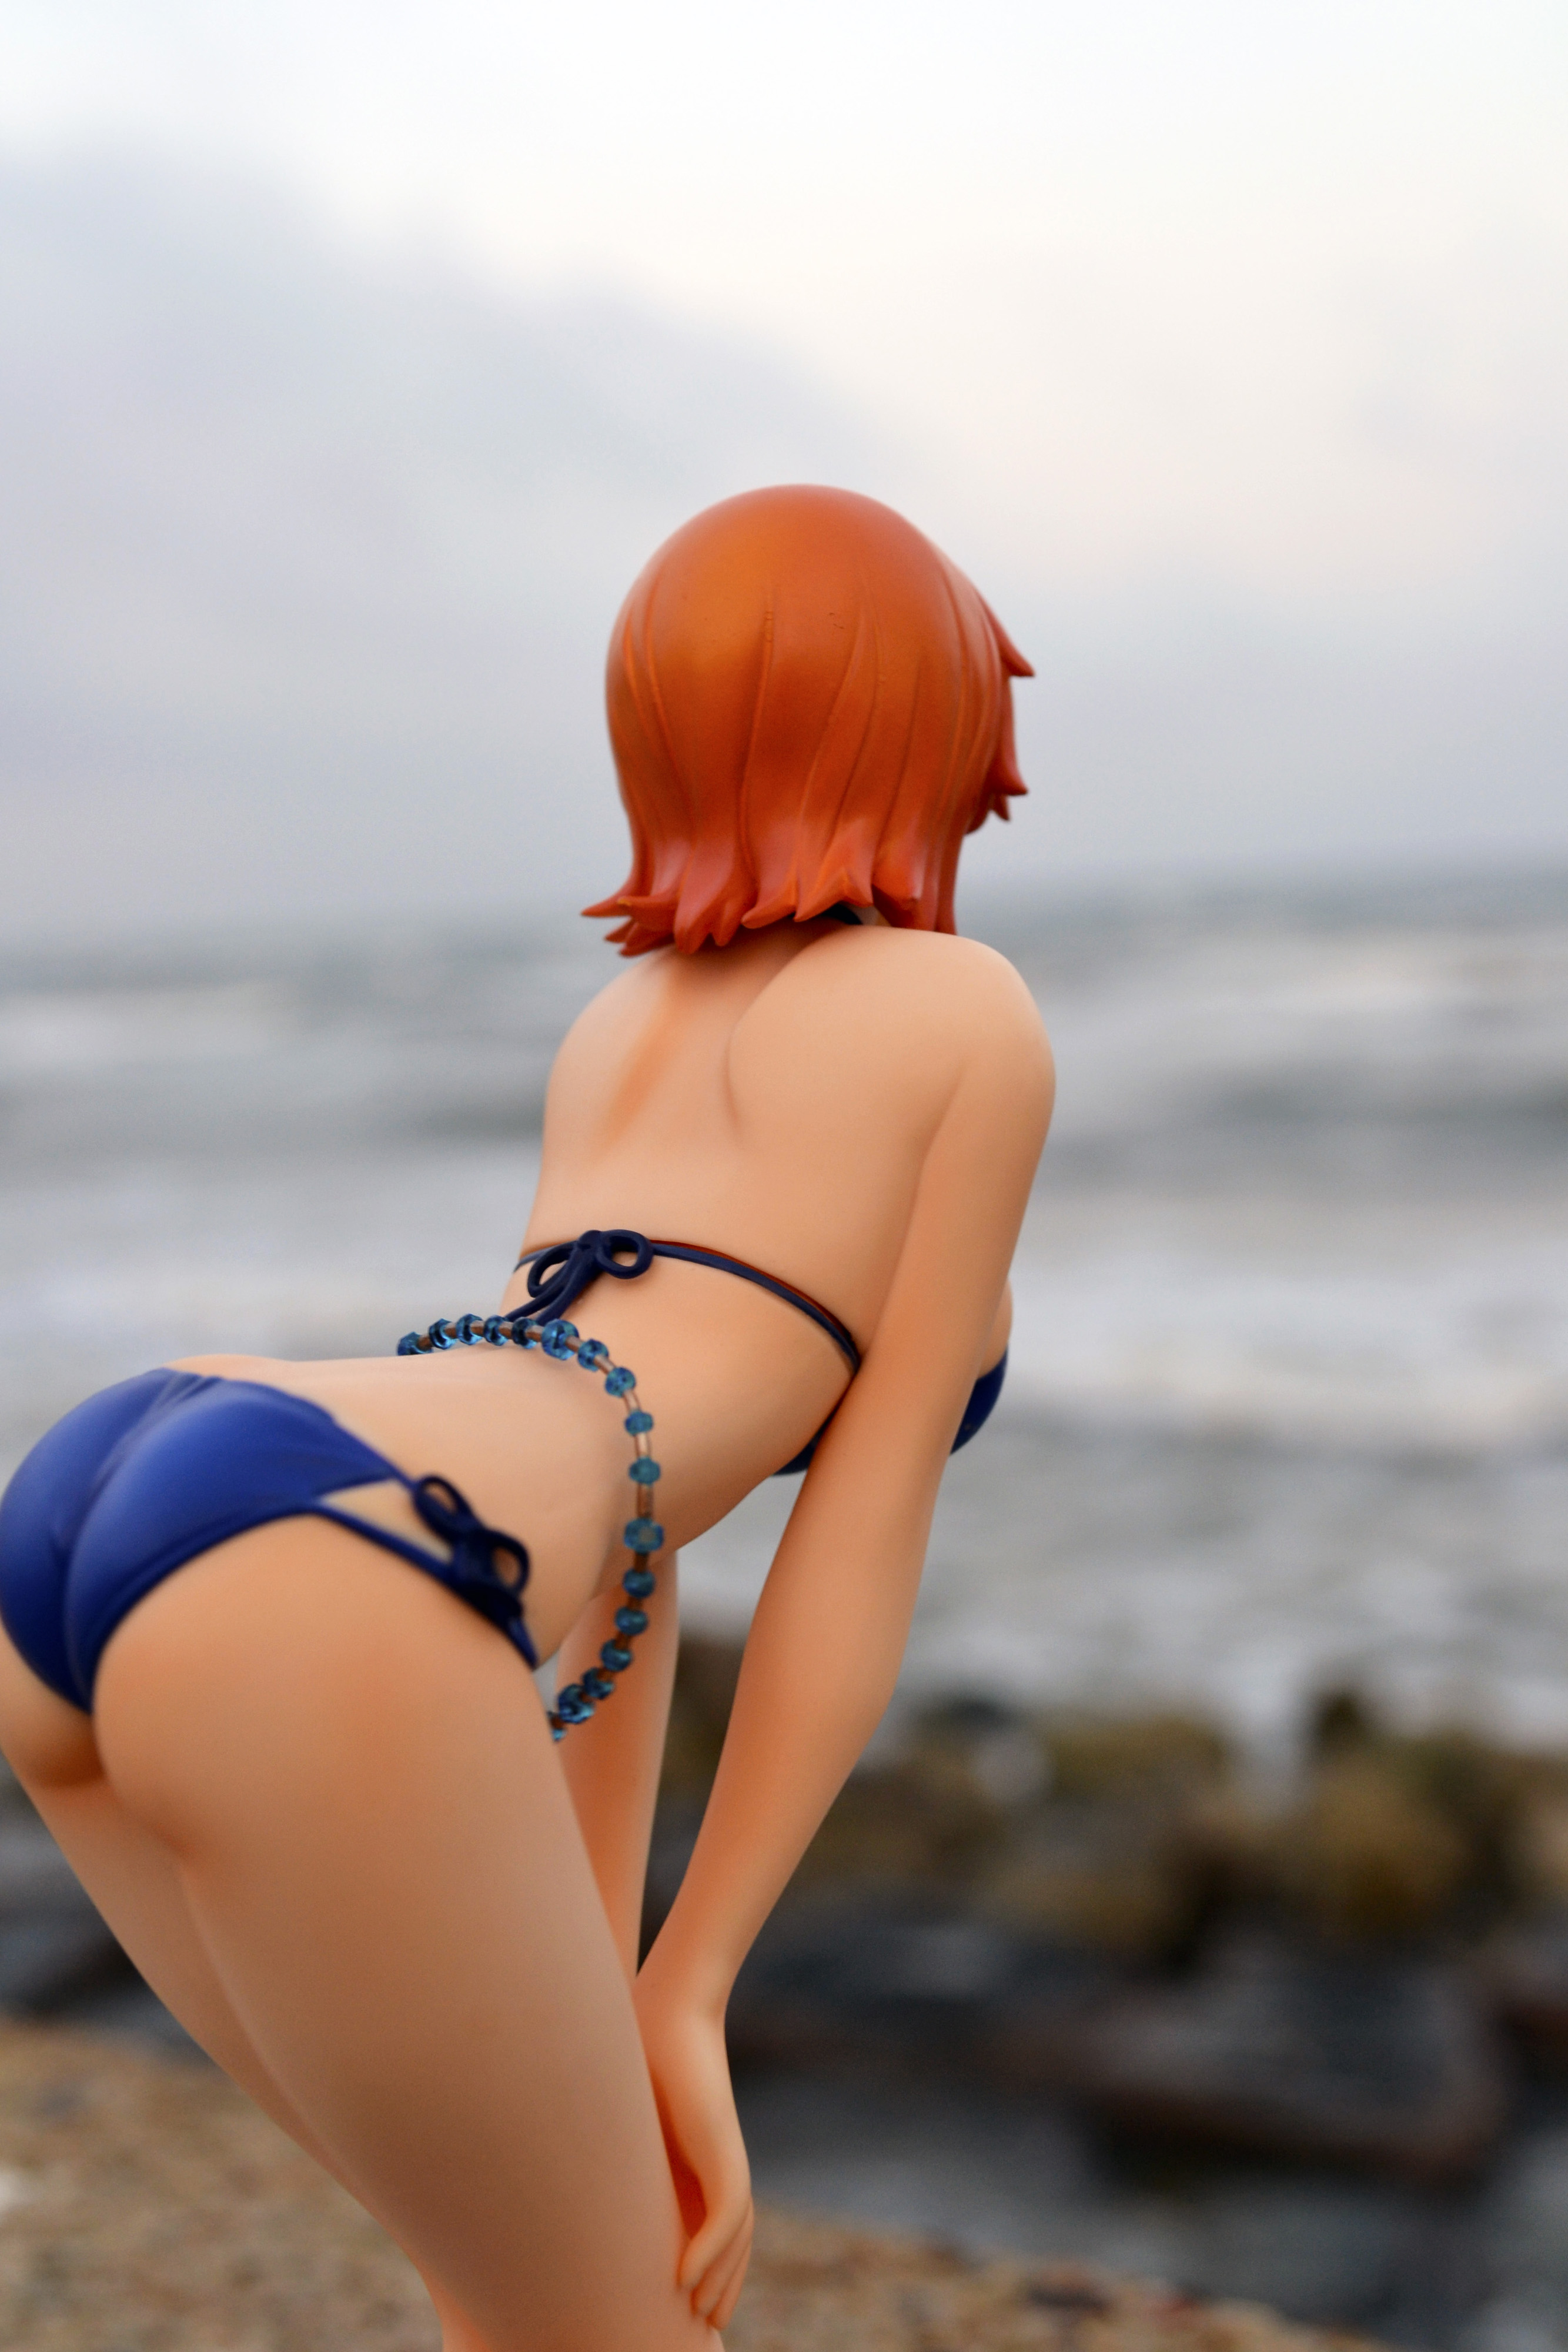 orange_hair bikini leaning_forward beach bare_back buttocks